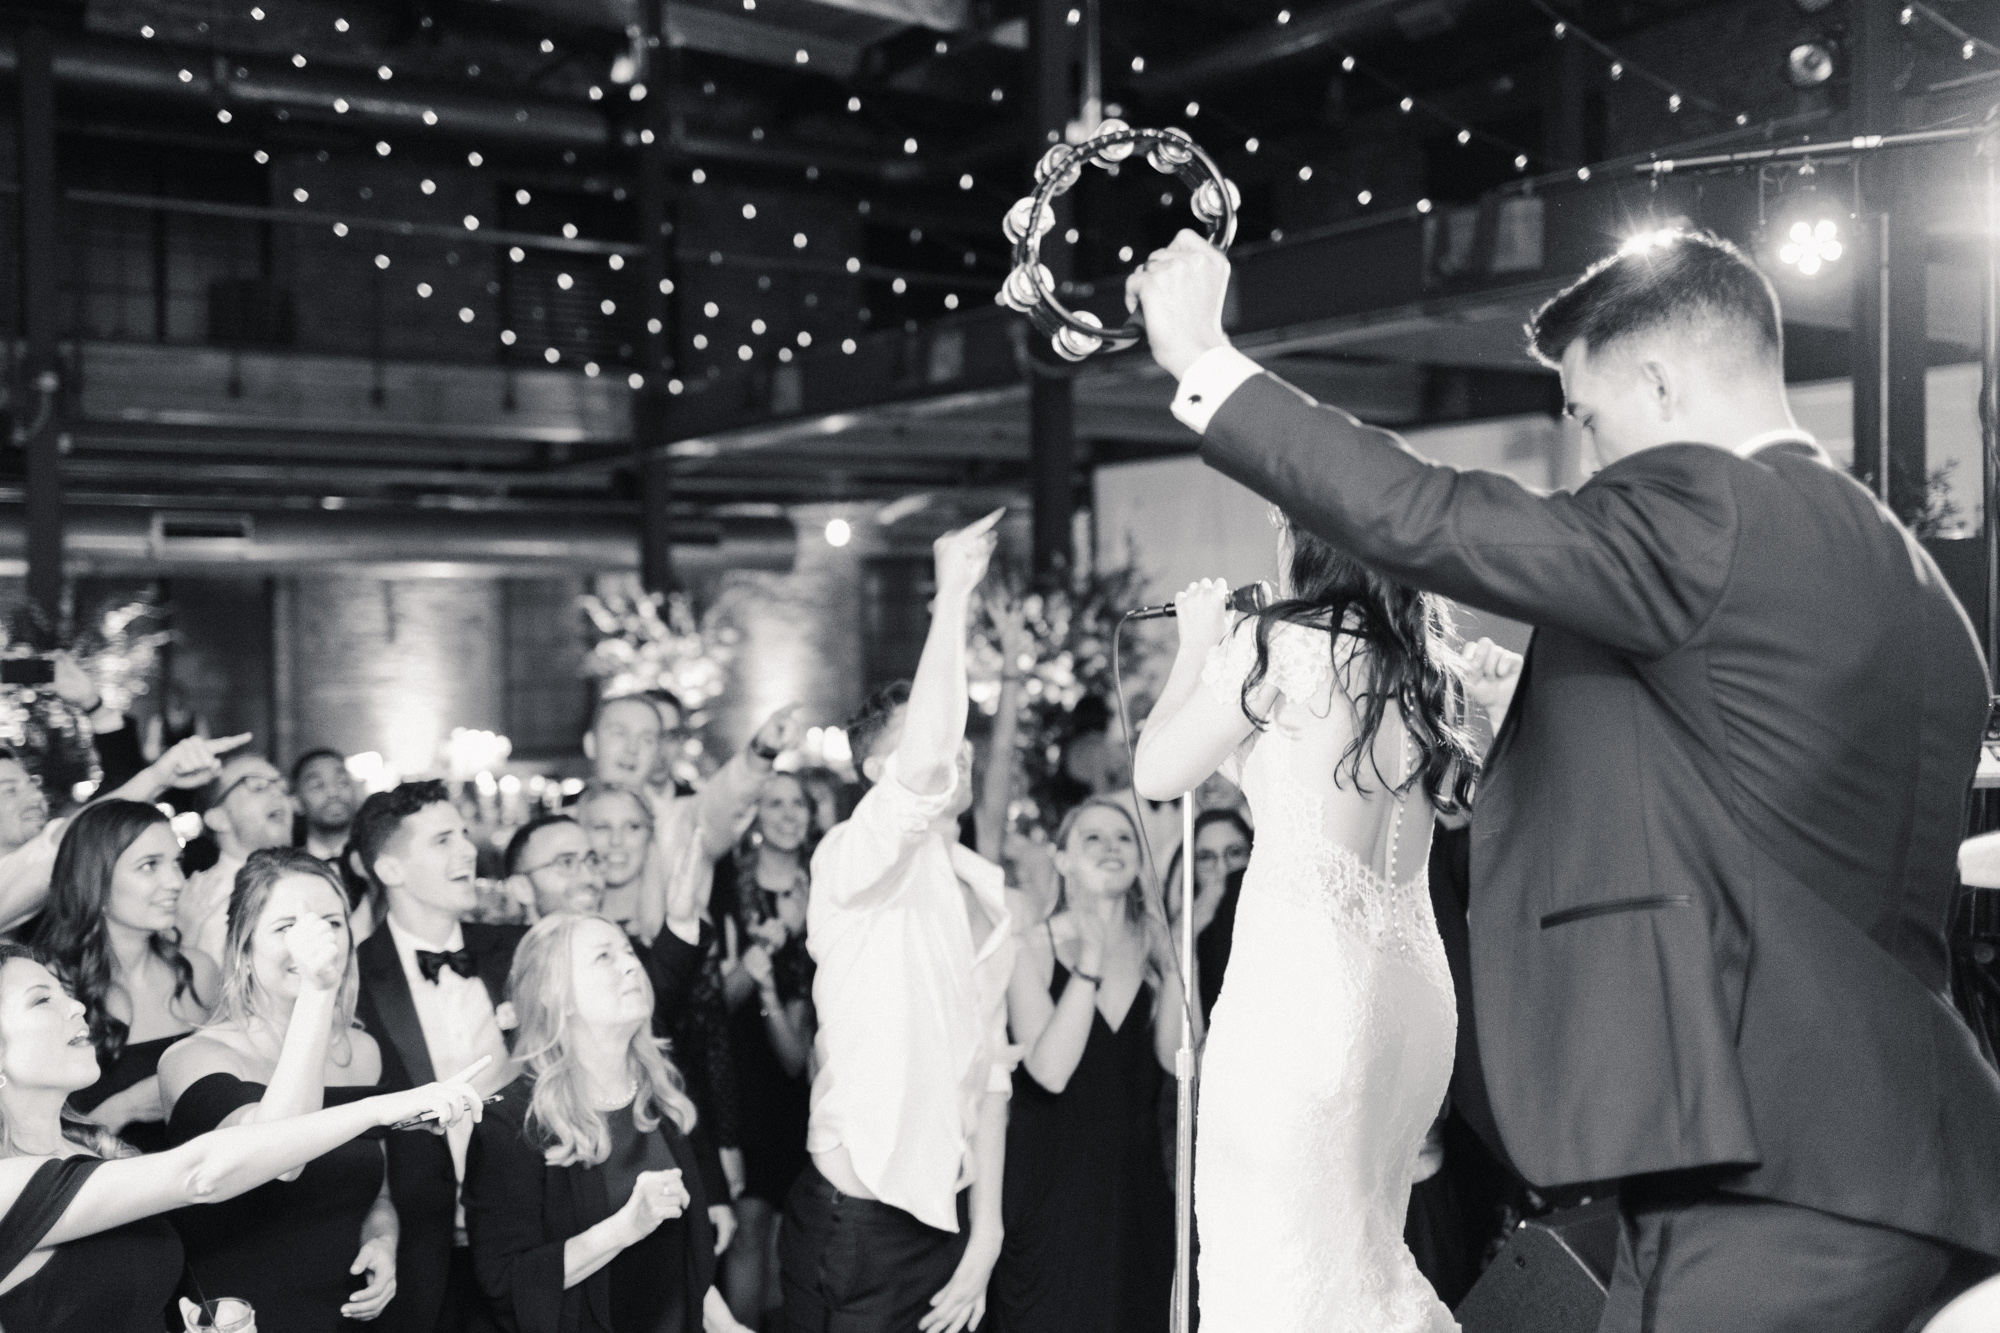 wedding couple performing on stage for guests